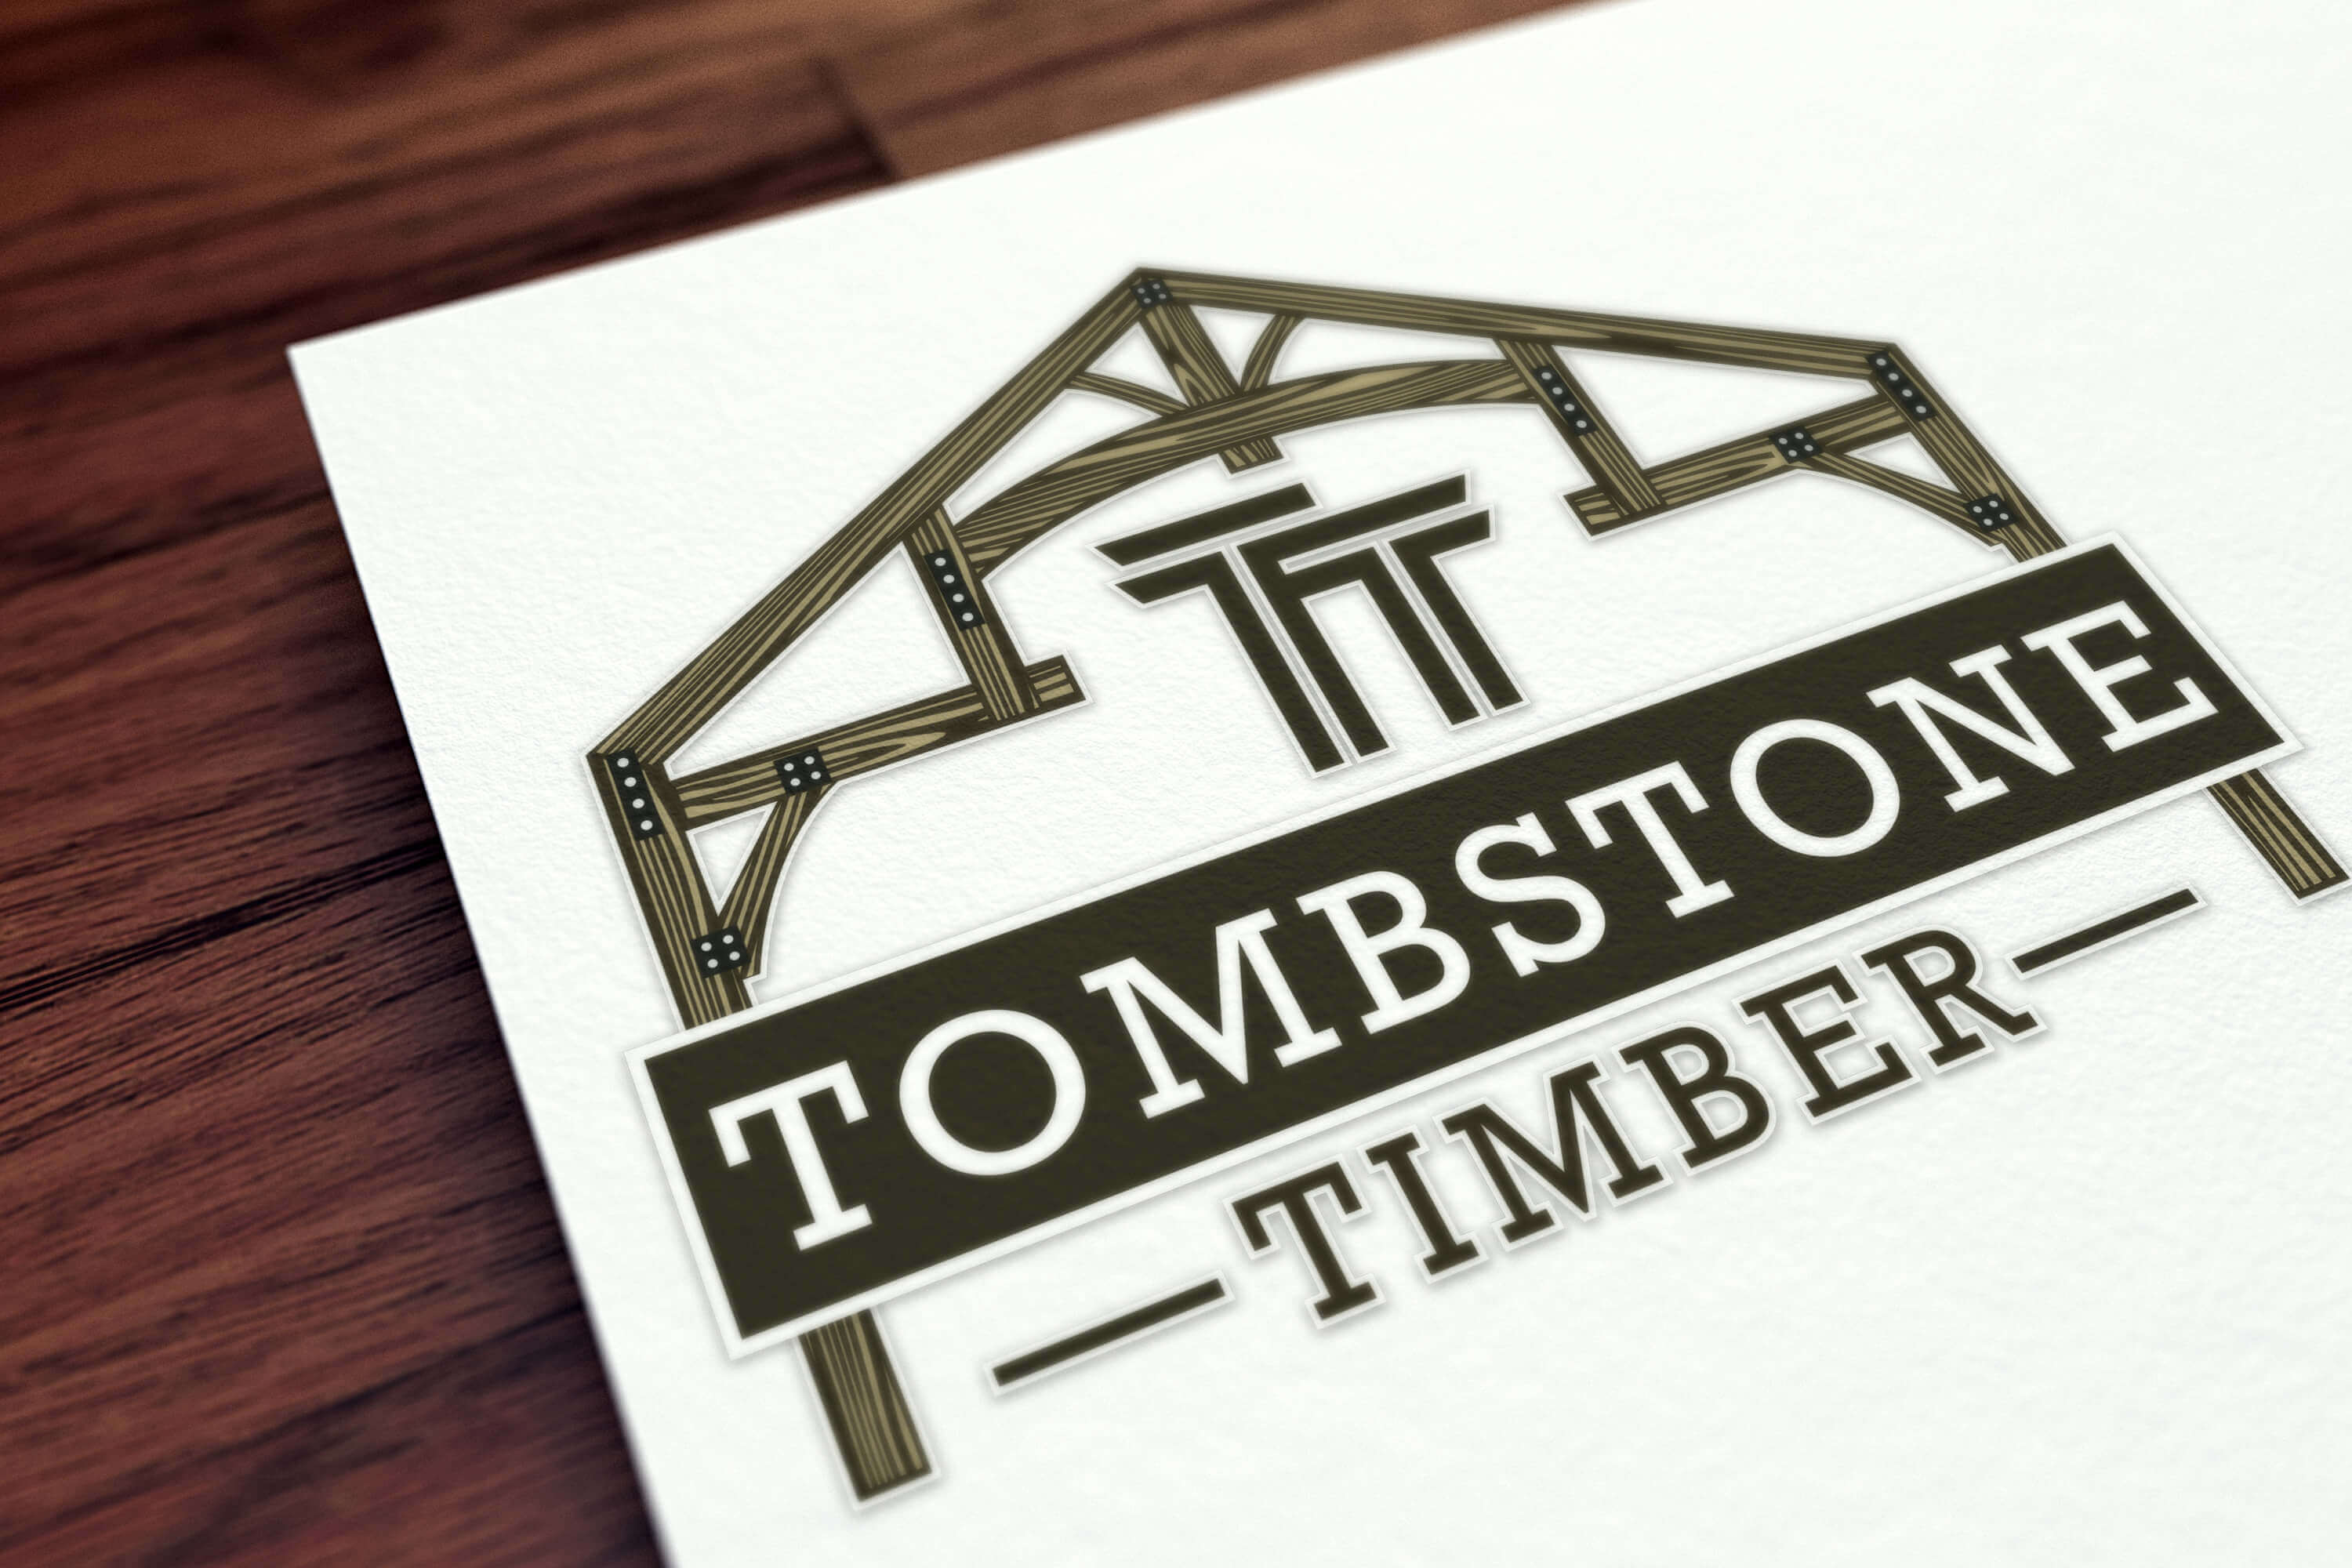 Tombstone Timber Logo Design Project